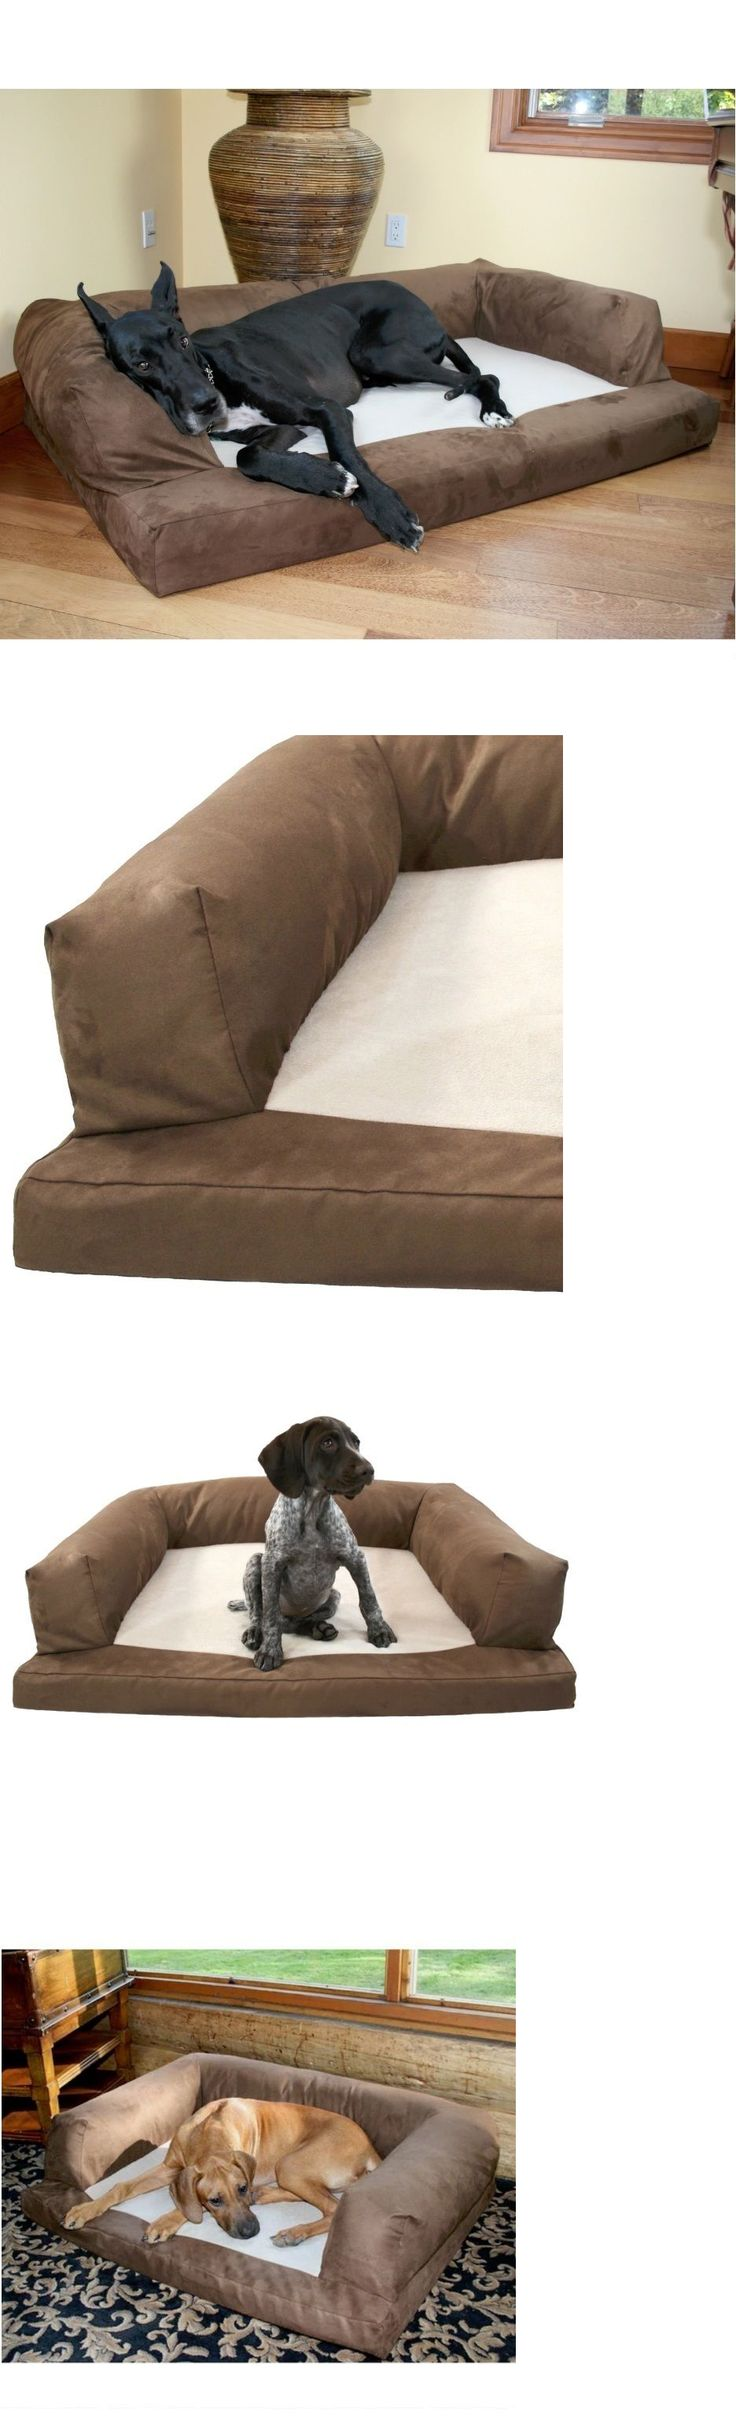 Beds 20744: Xxl Dog Bed Huge New Size 60X40 Orthopedic Xx-Large Breed Extra Giant Sofa Brown -> BUY IT NOW ONLY: $135.95 on eBay!